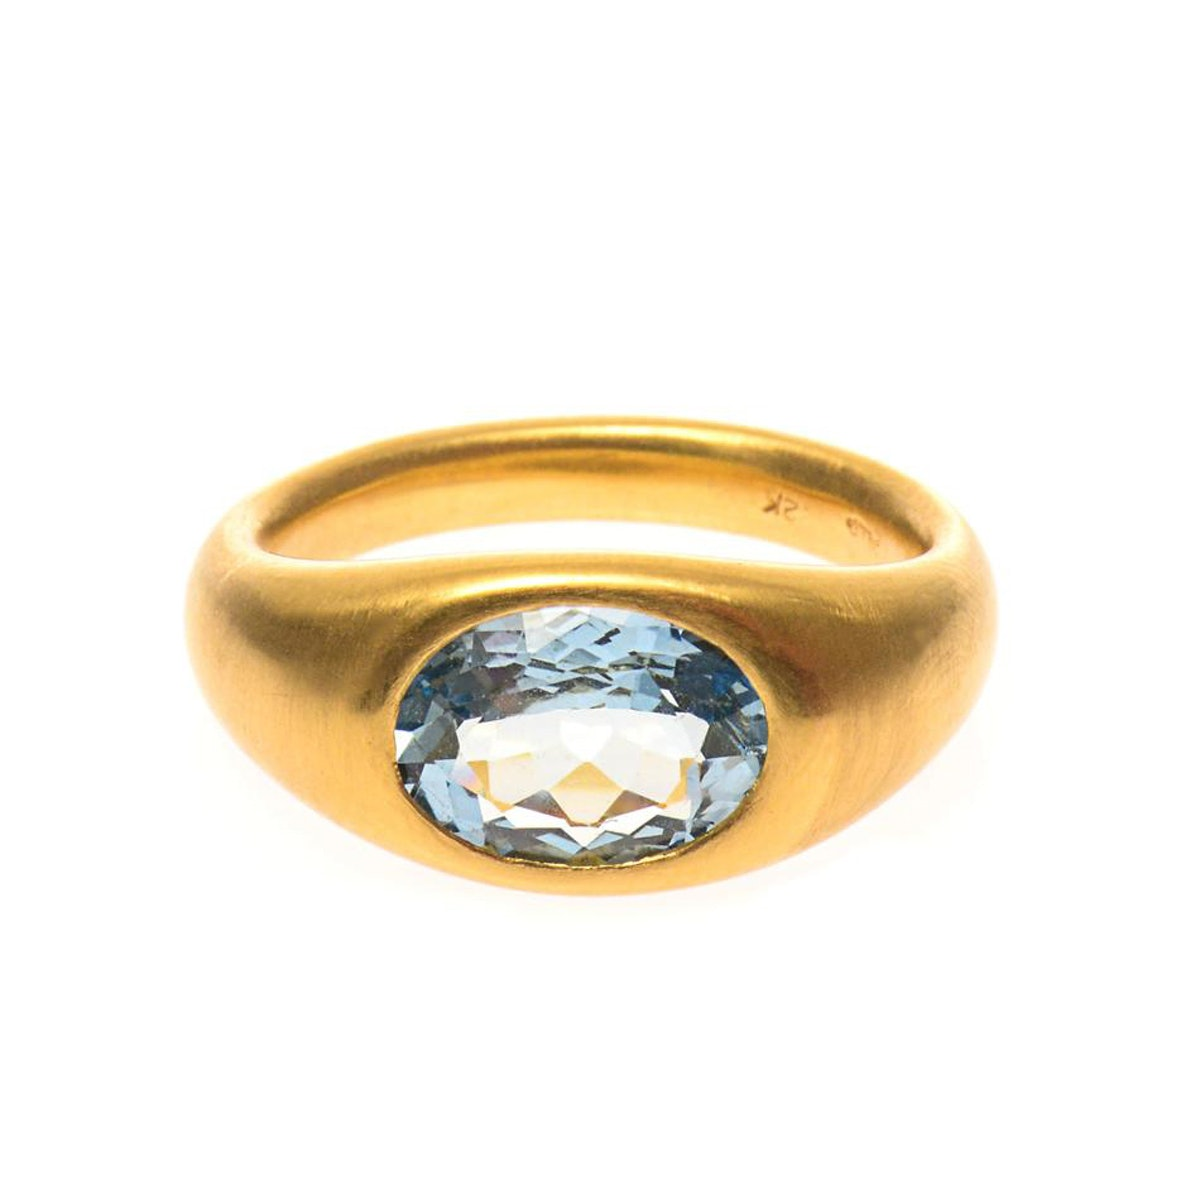 Marie Helene De Taillac ring